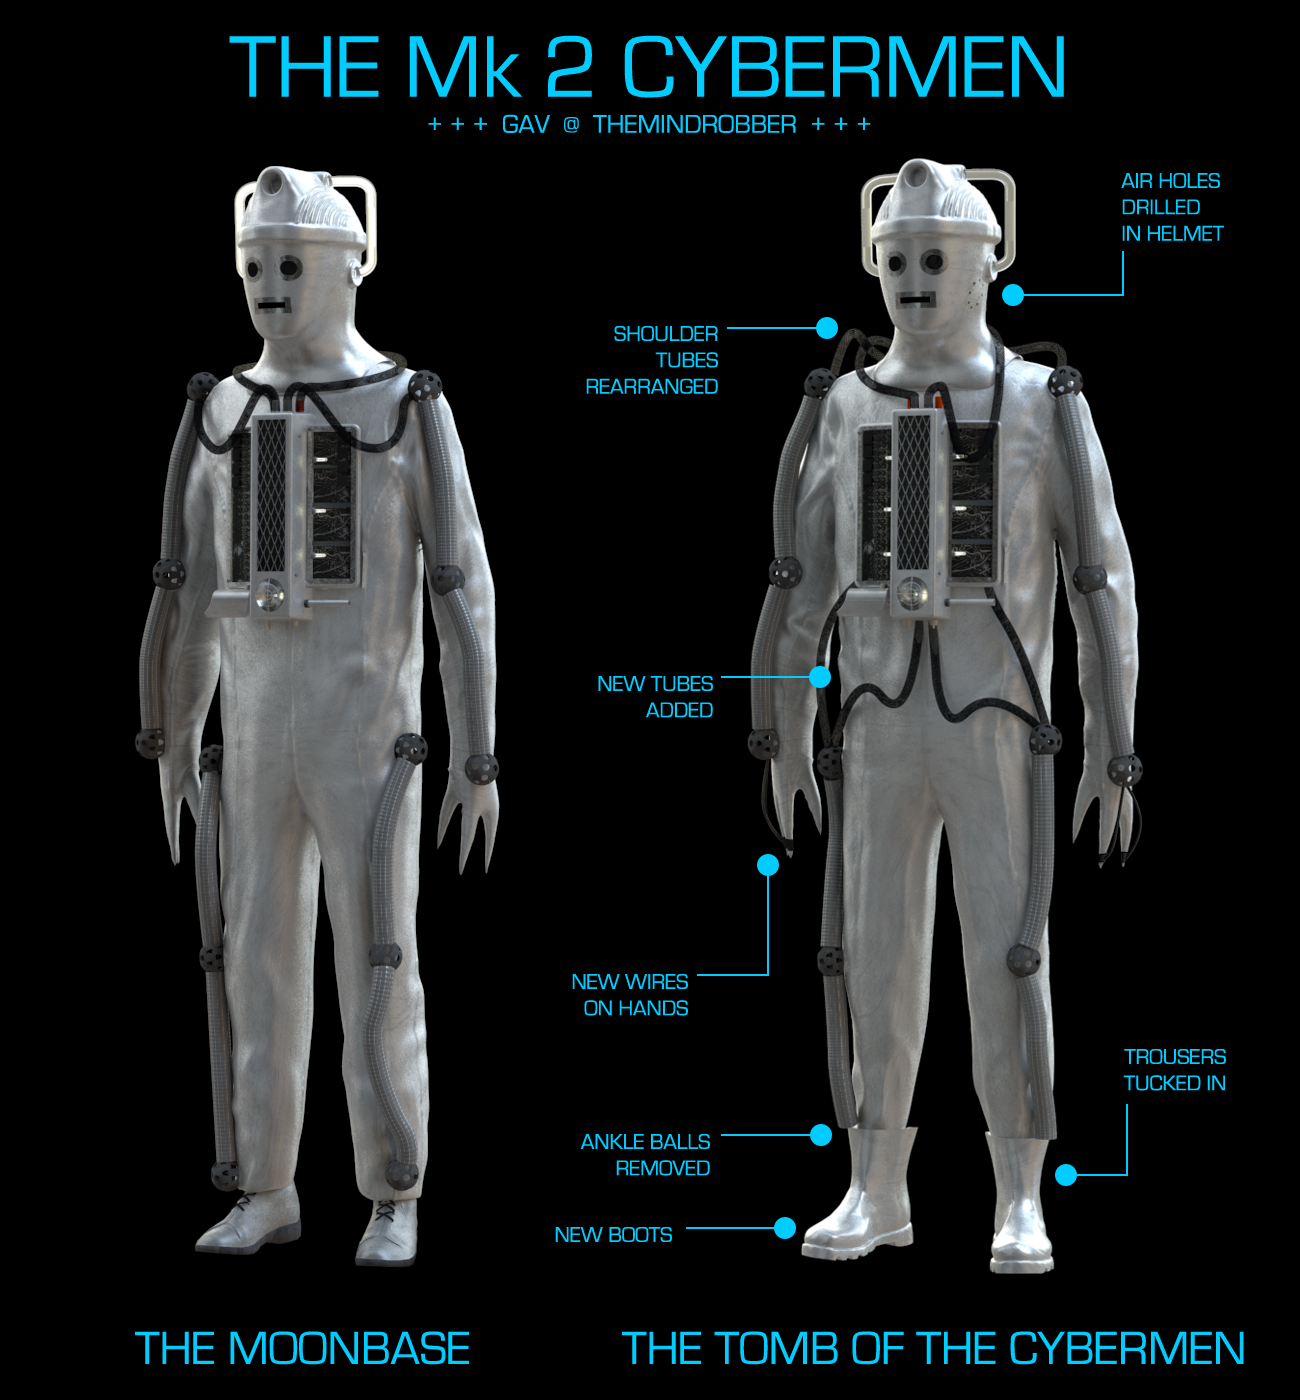 Moonbase Cyberman compared with Tomb Cyberman